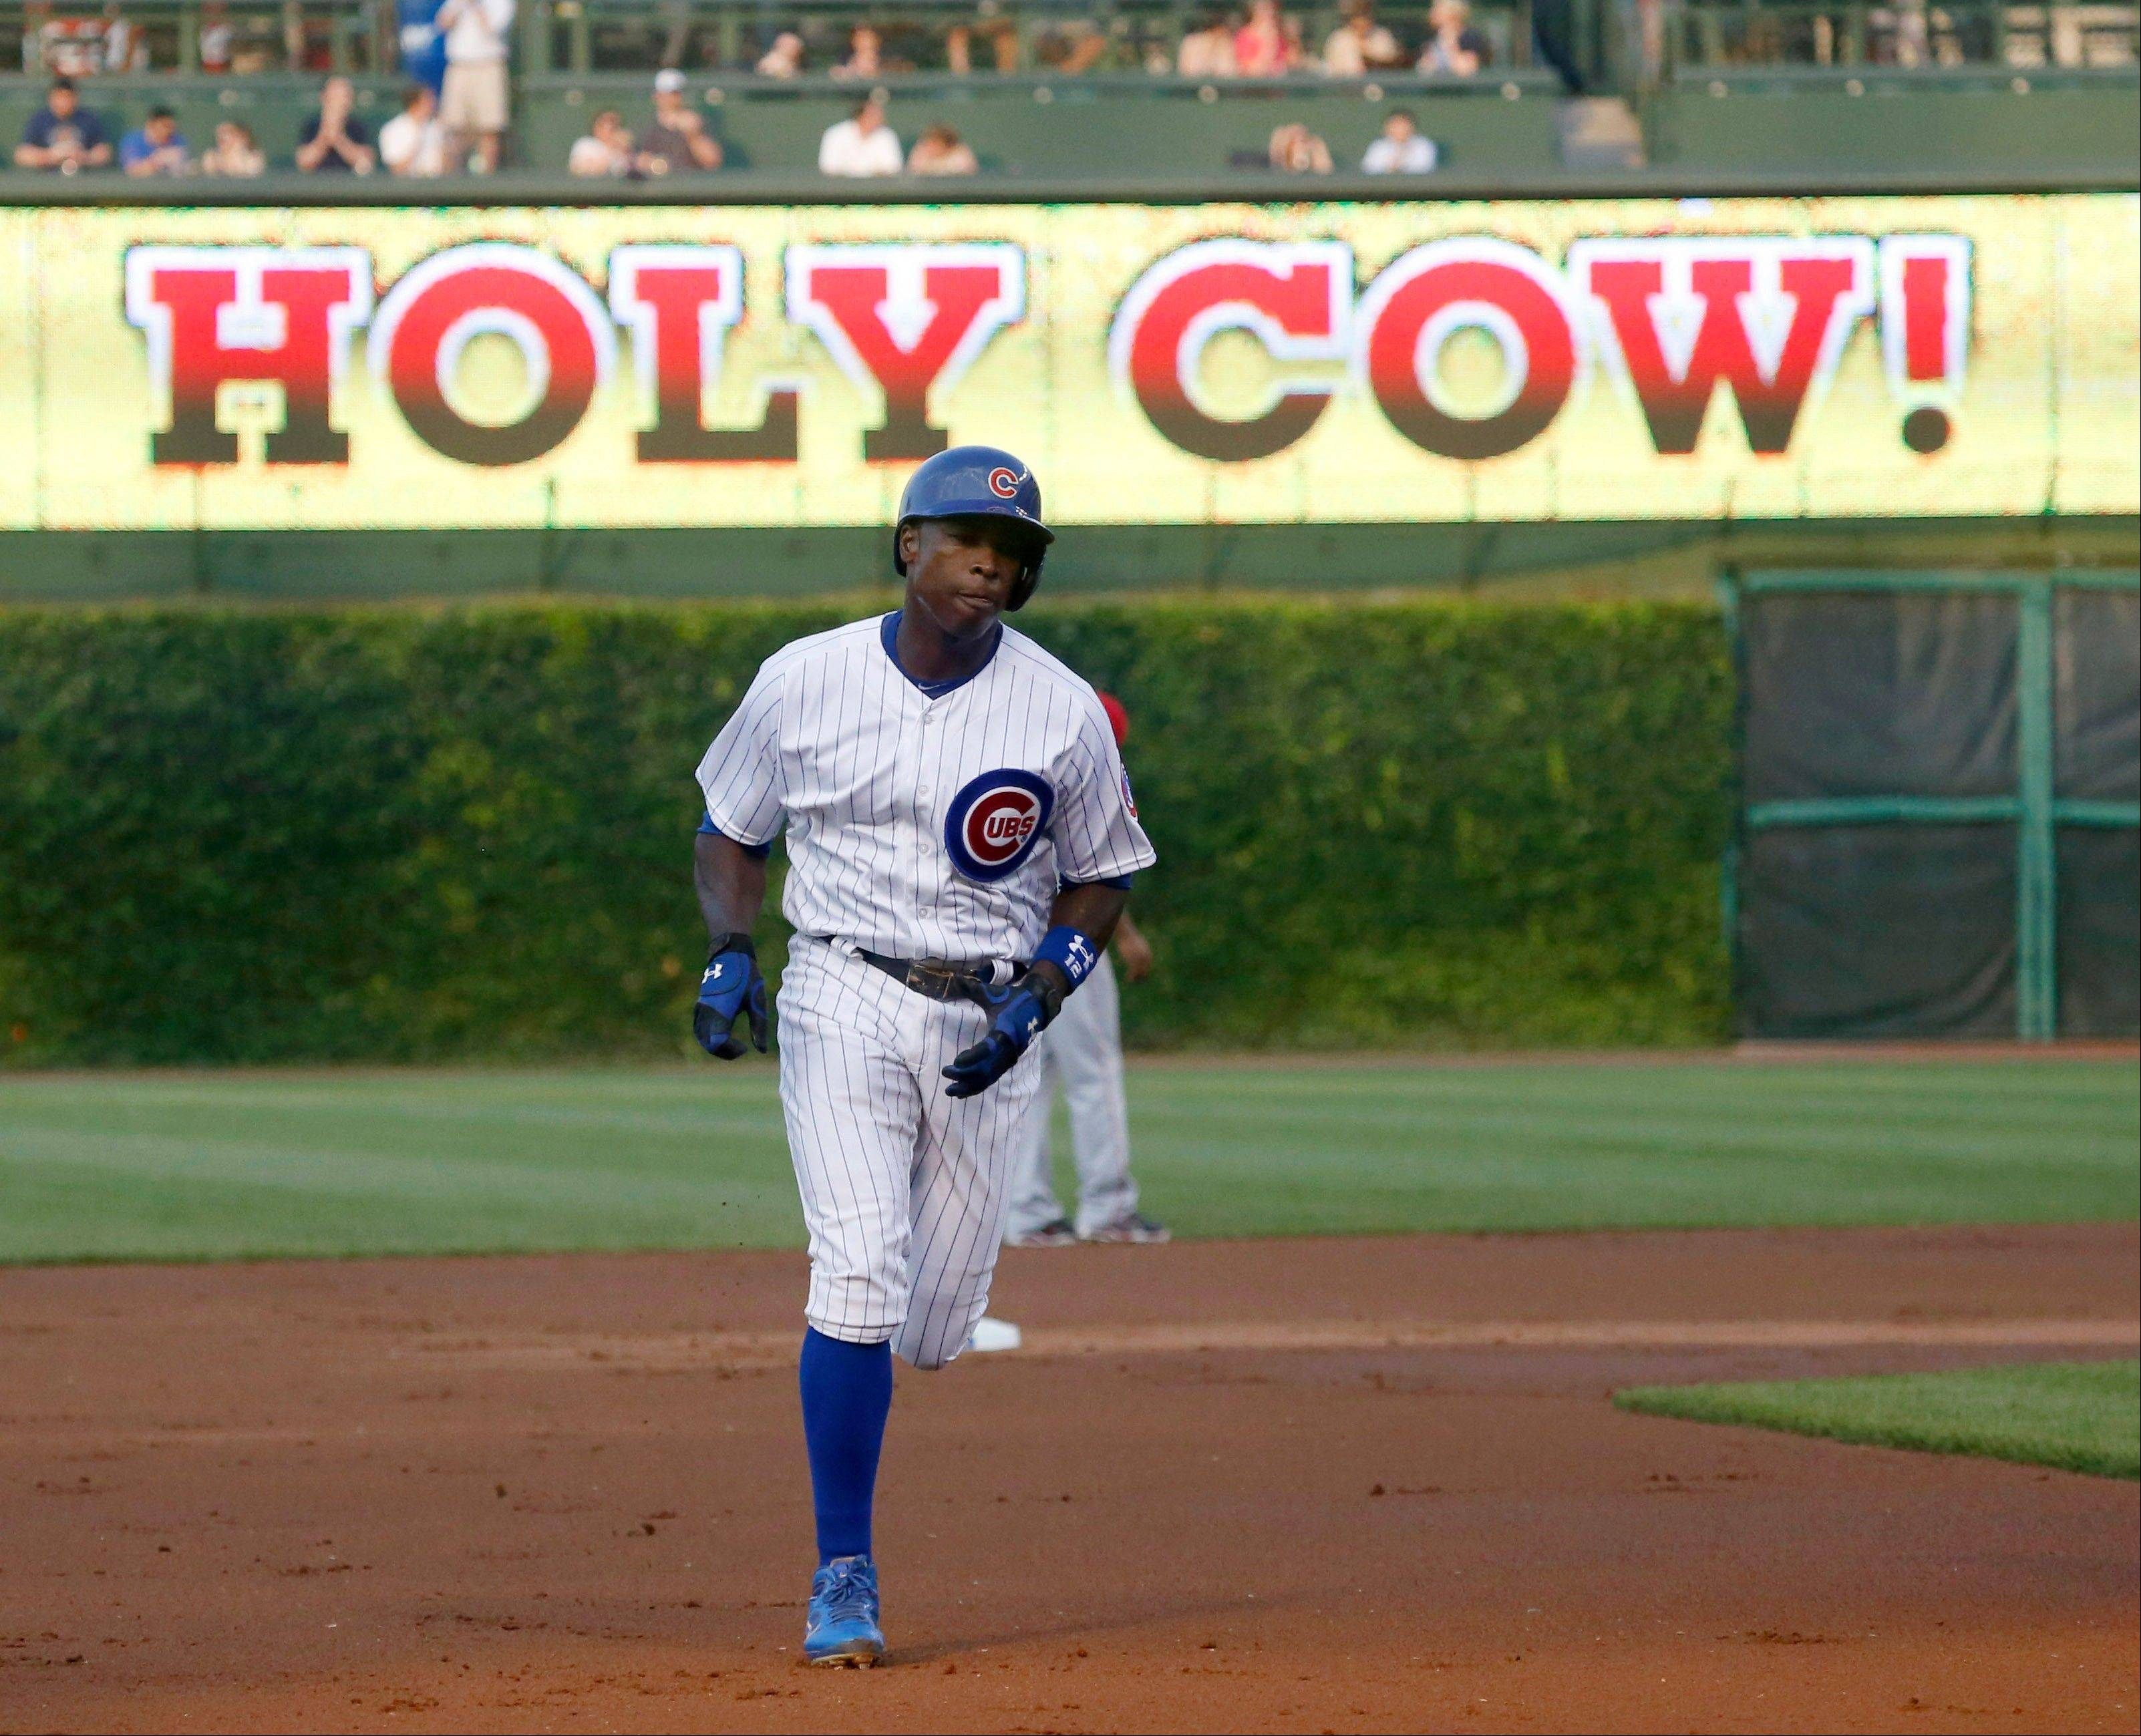 Cubs' Soriano stays hot with 2 more homers